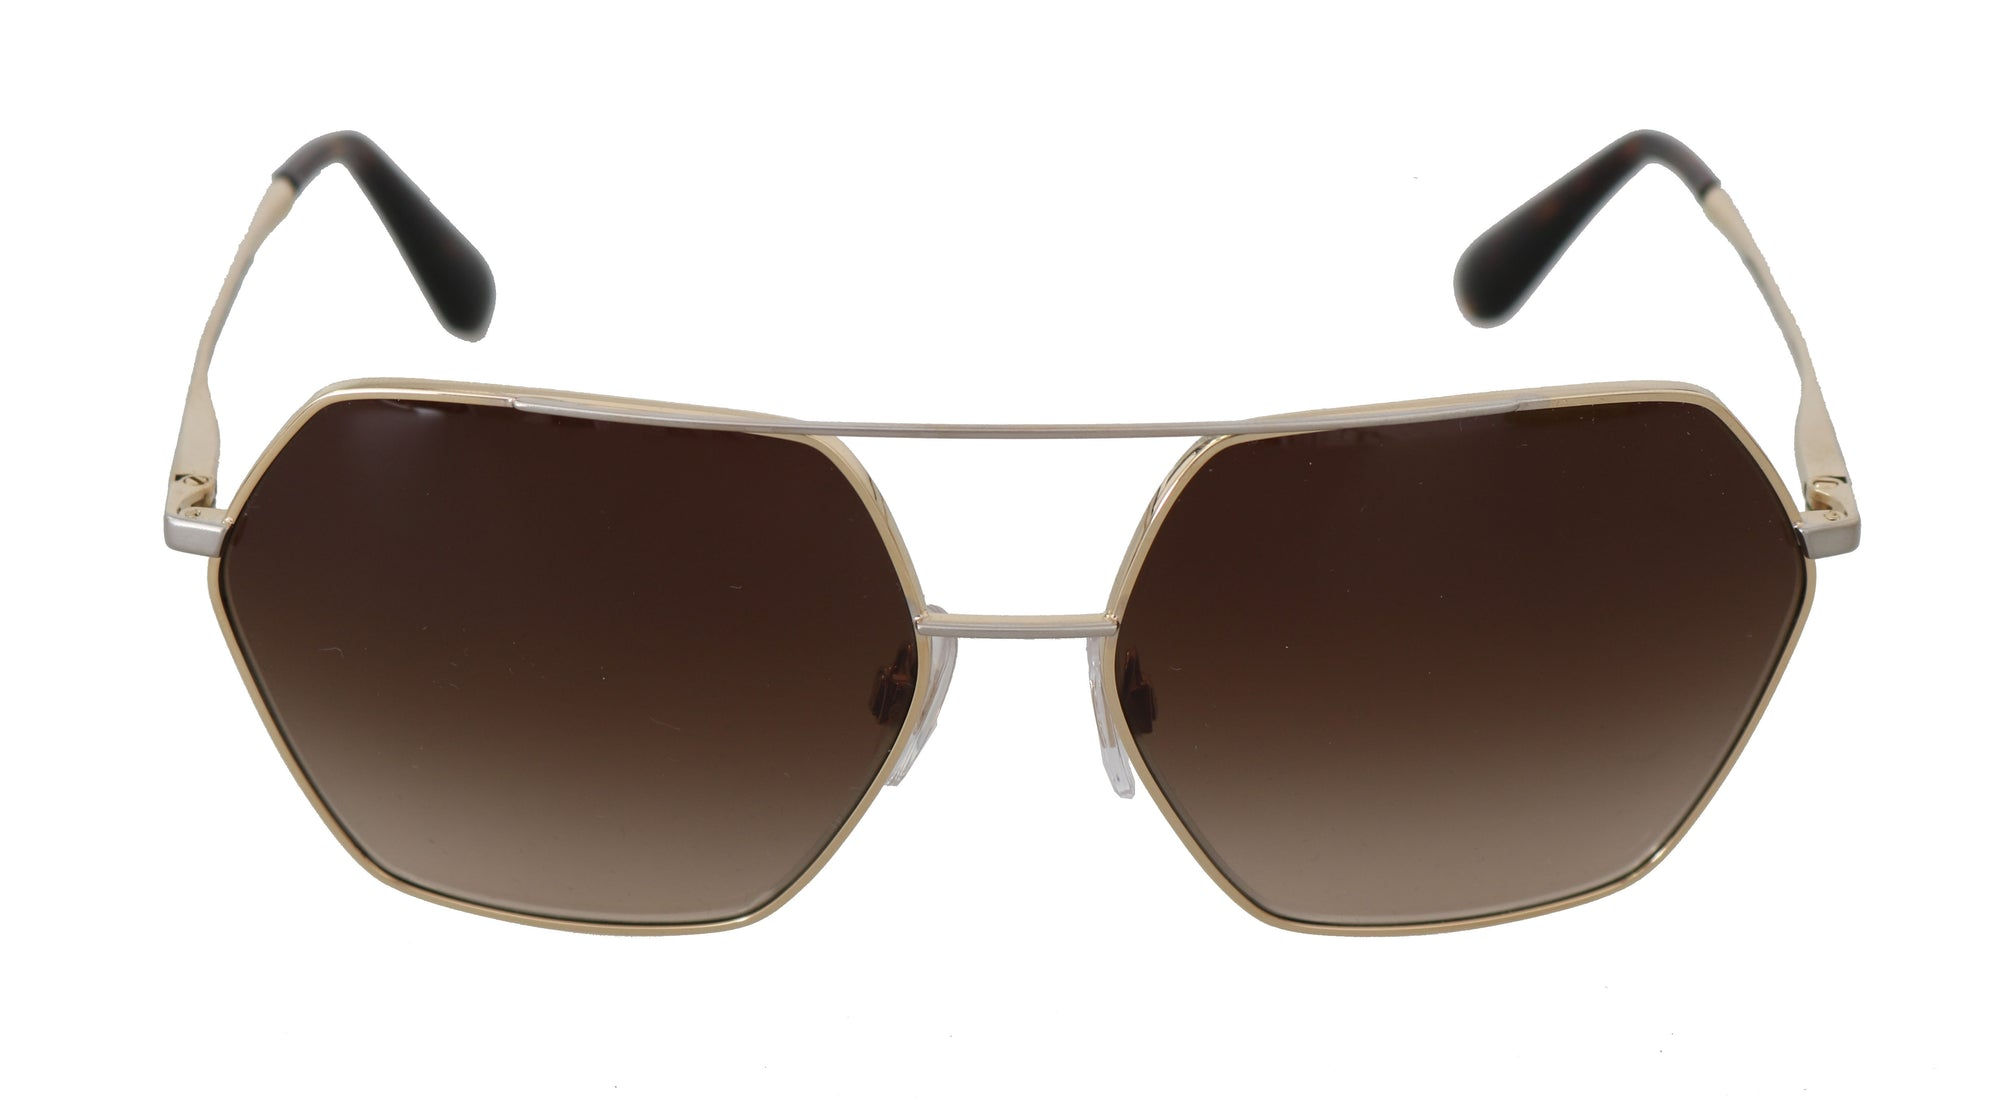 Gold DG2157 Gradient Brown Pilot Sunglasses